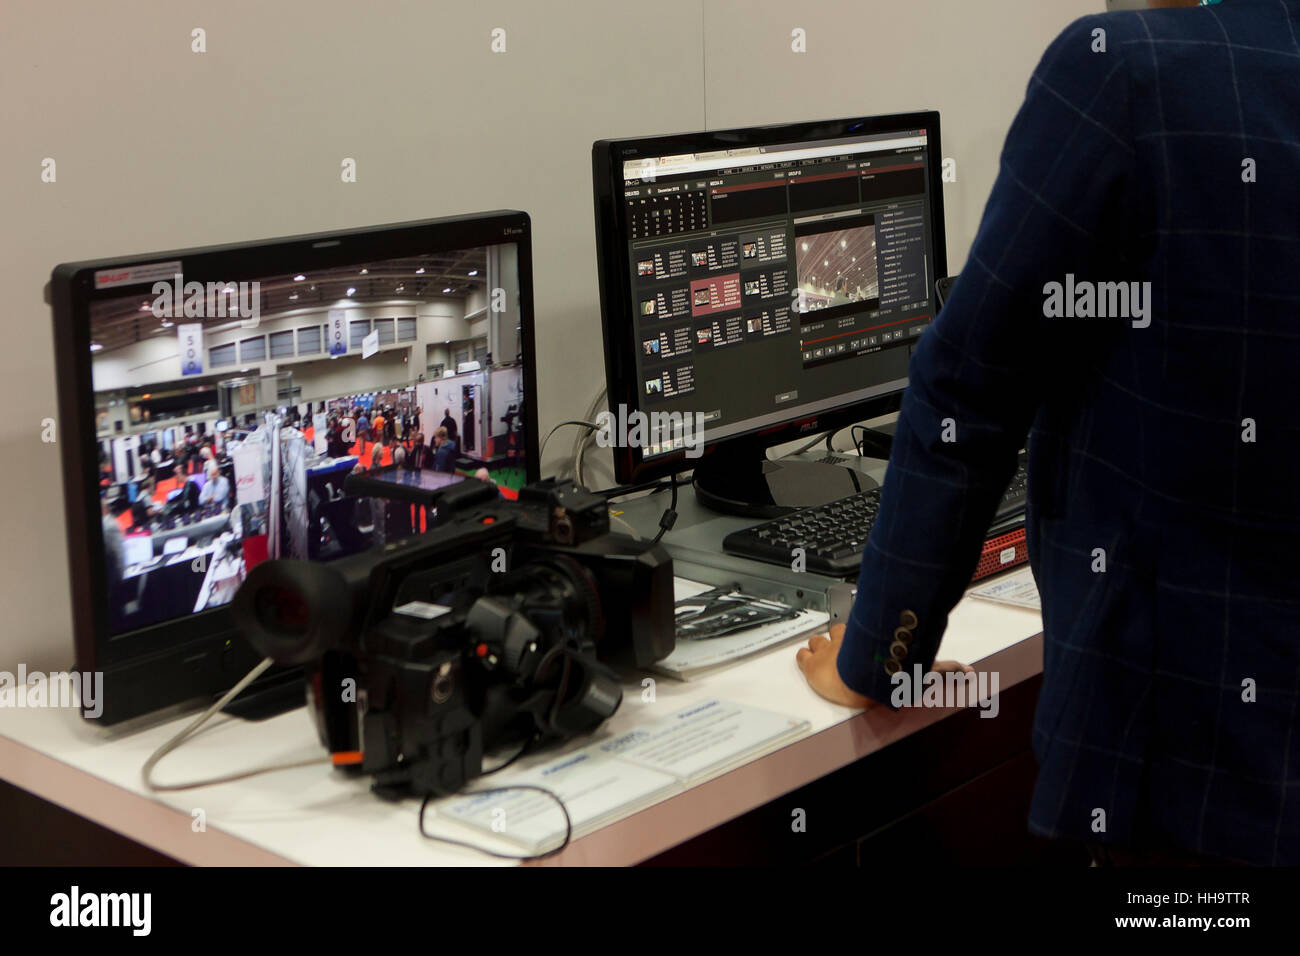 Computer workstation showing video editing software on screen - USA - Stock Image